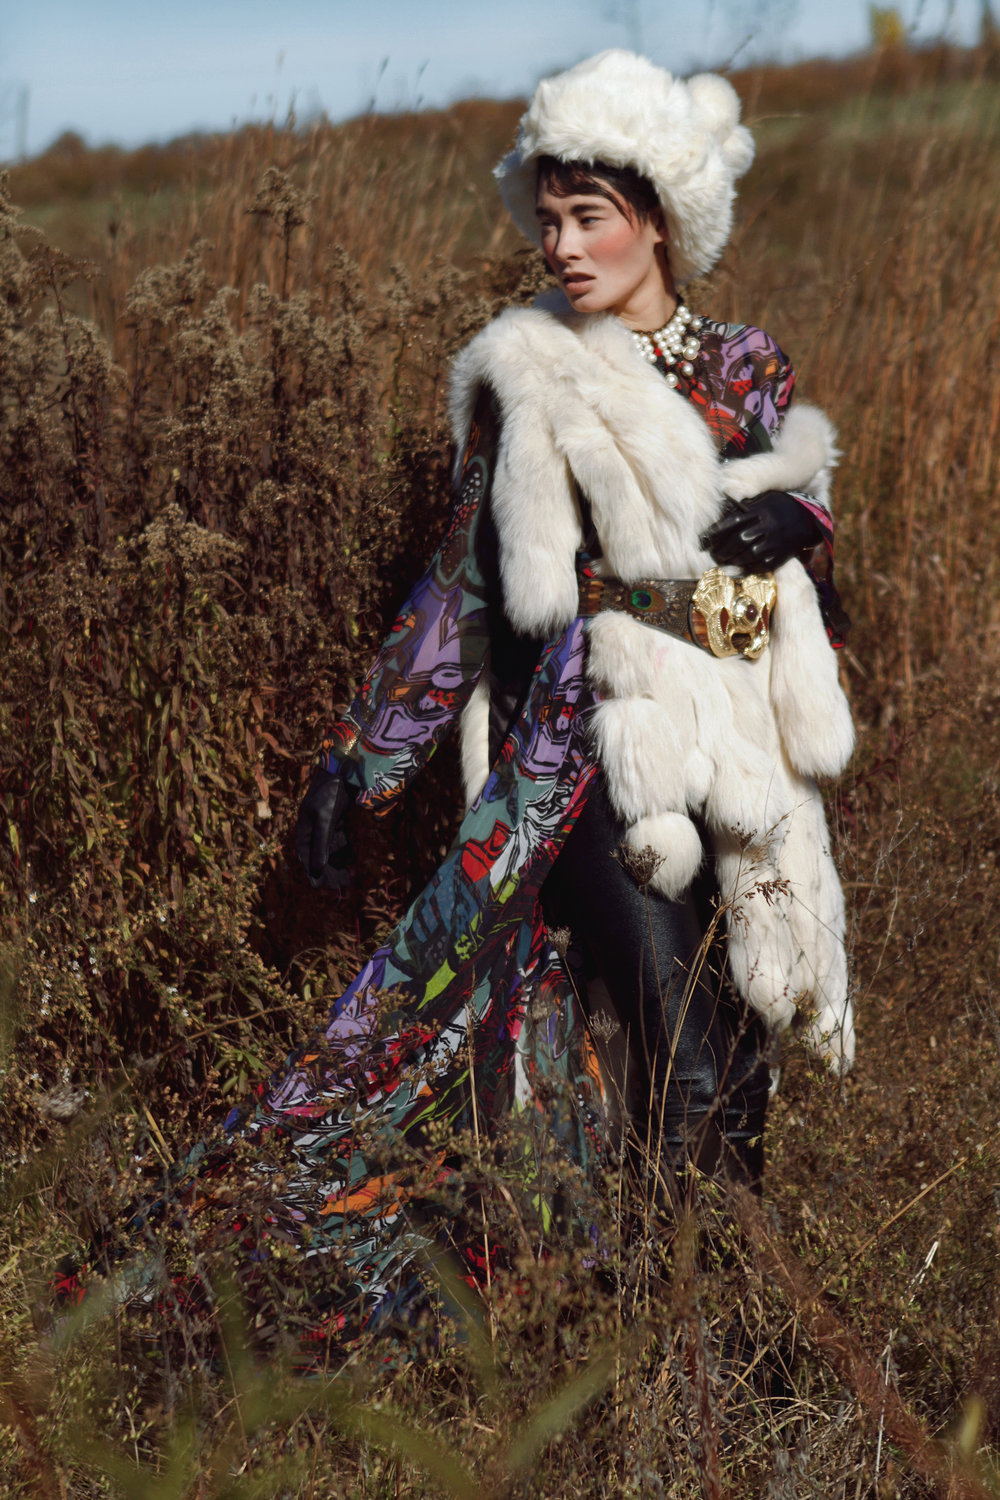 Dress by Carmelita Couture; Fur and leather tights by Teranchula Couture; Fur Hat by Ke Collection